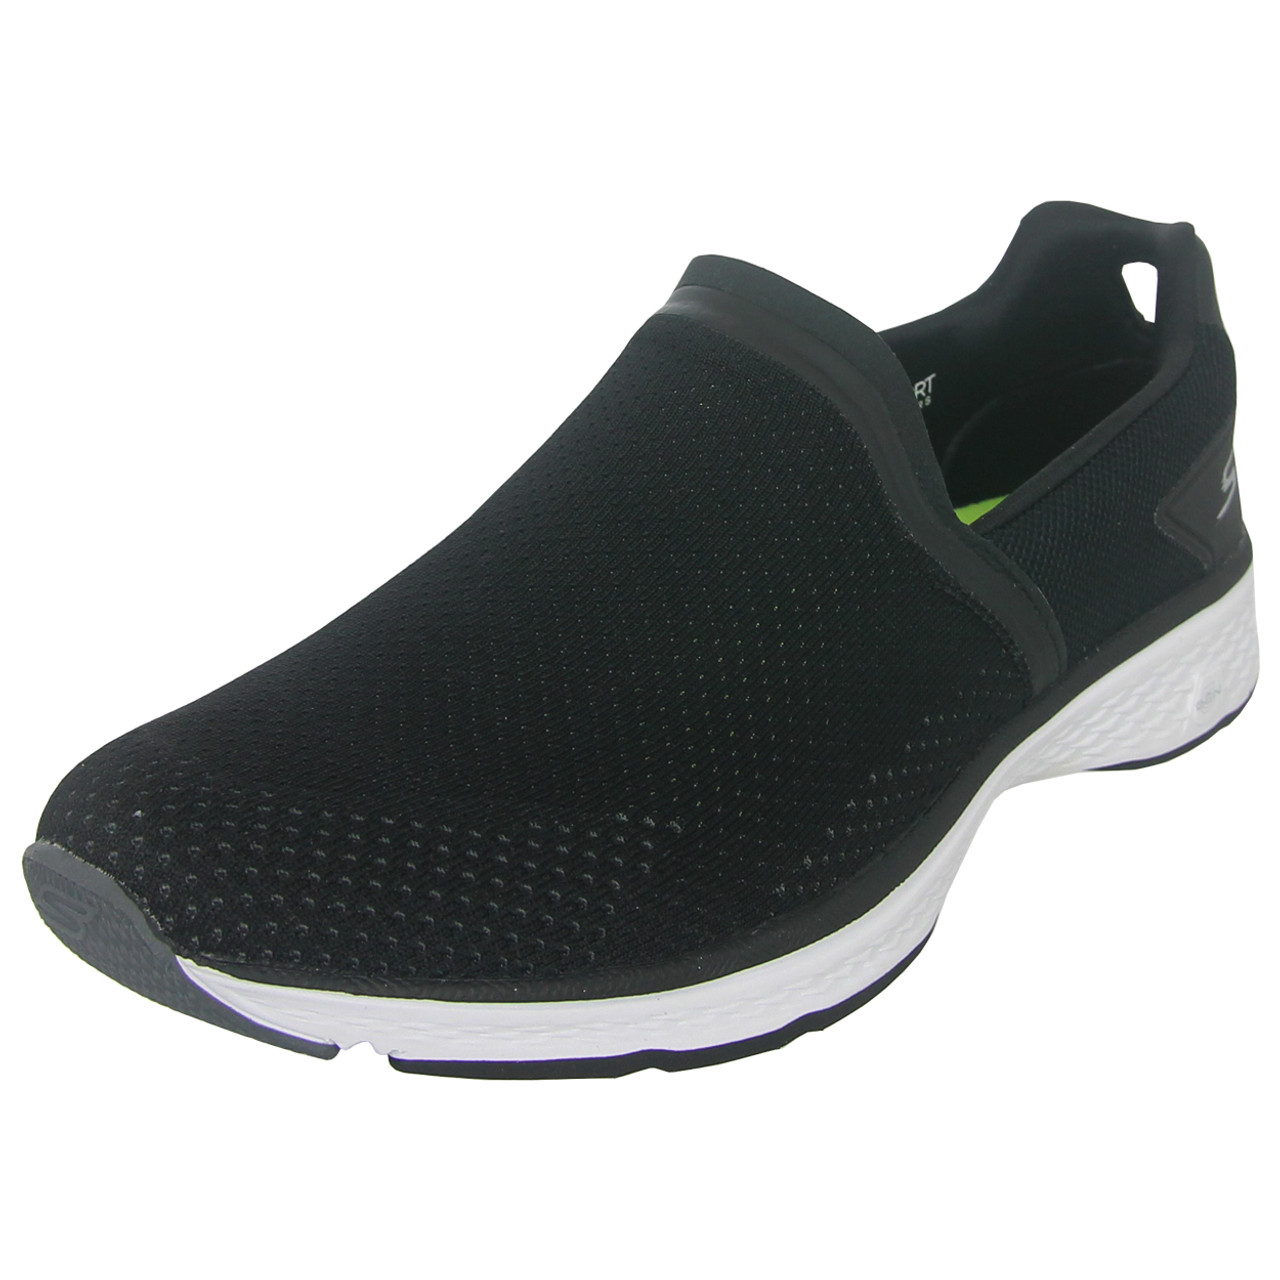 Skechers GOwalk Slip On Sport Energy Shoe